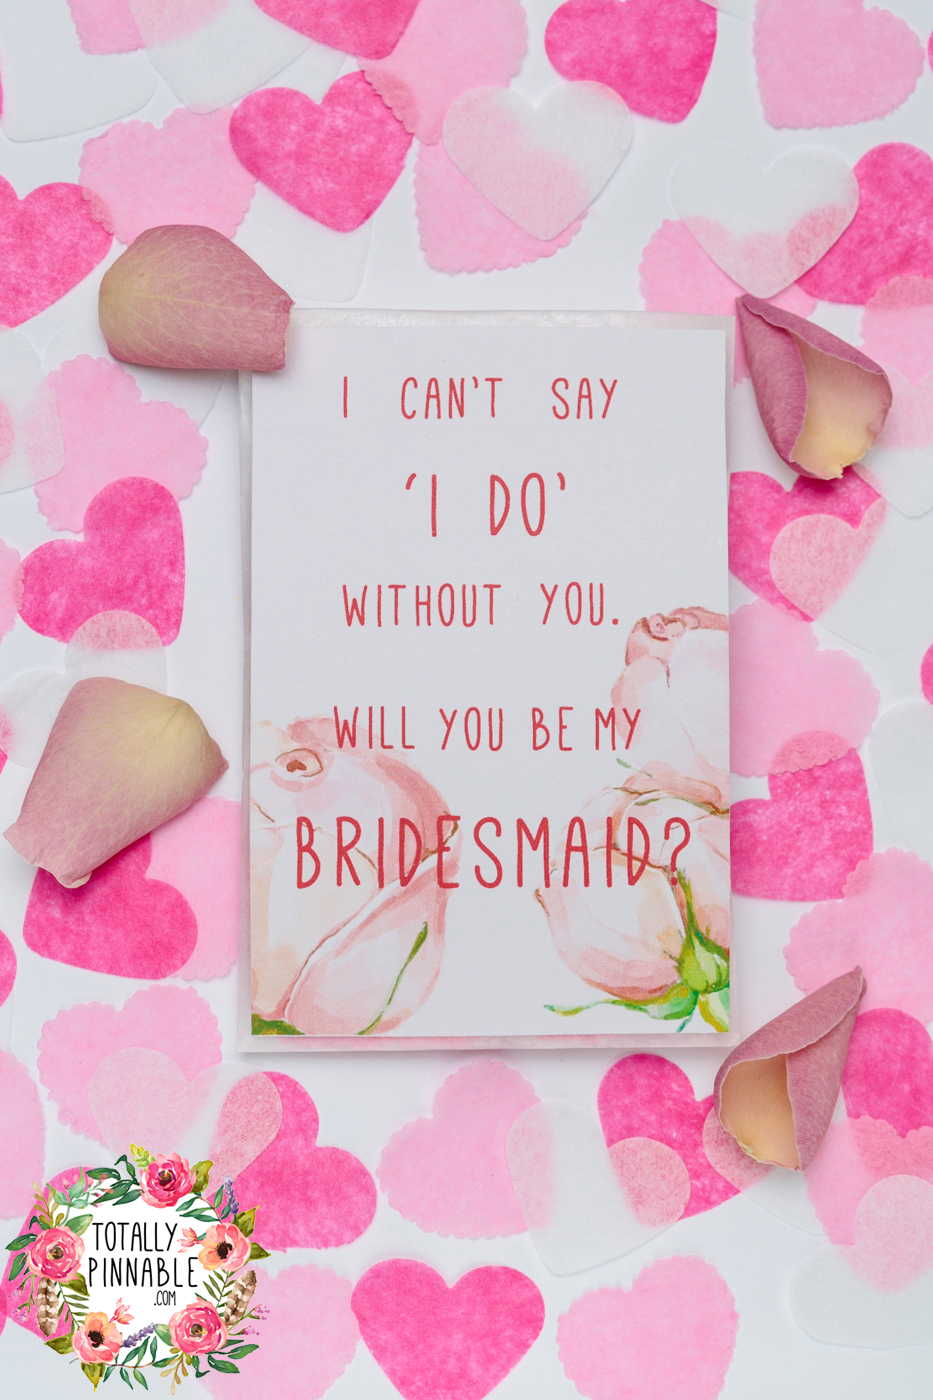 I can't say 'I DO' without you, will you be my bridesmaid? Confetti filled envelope by totallypinnable.com